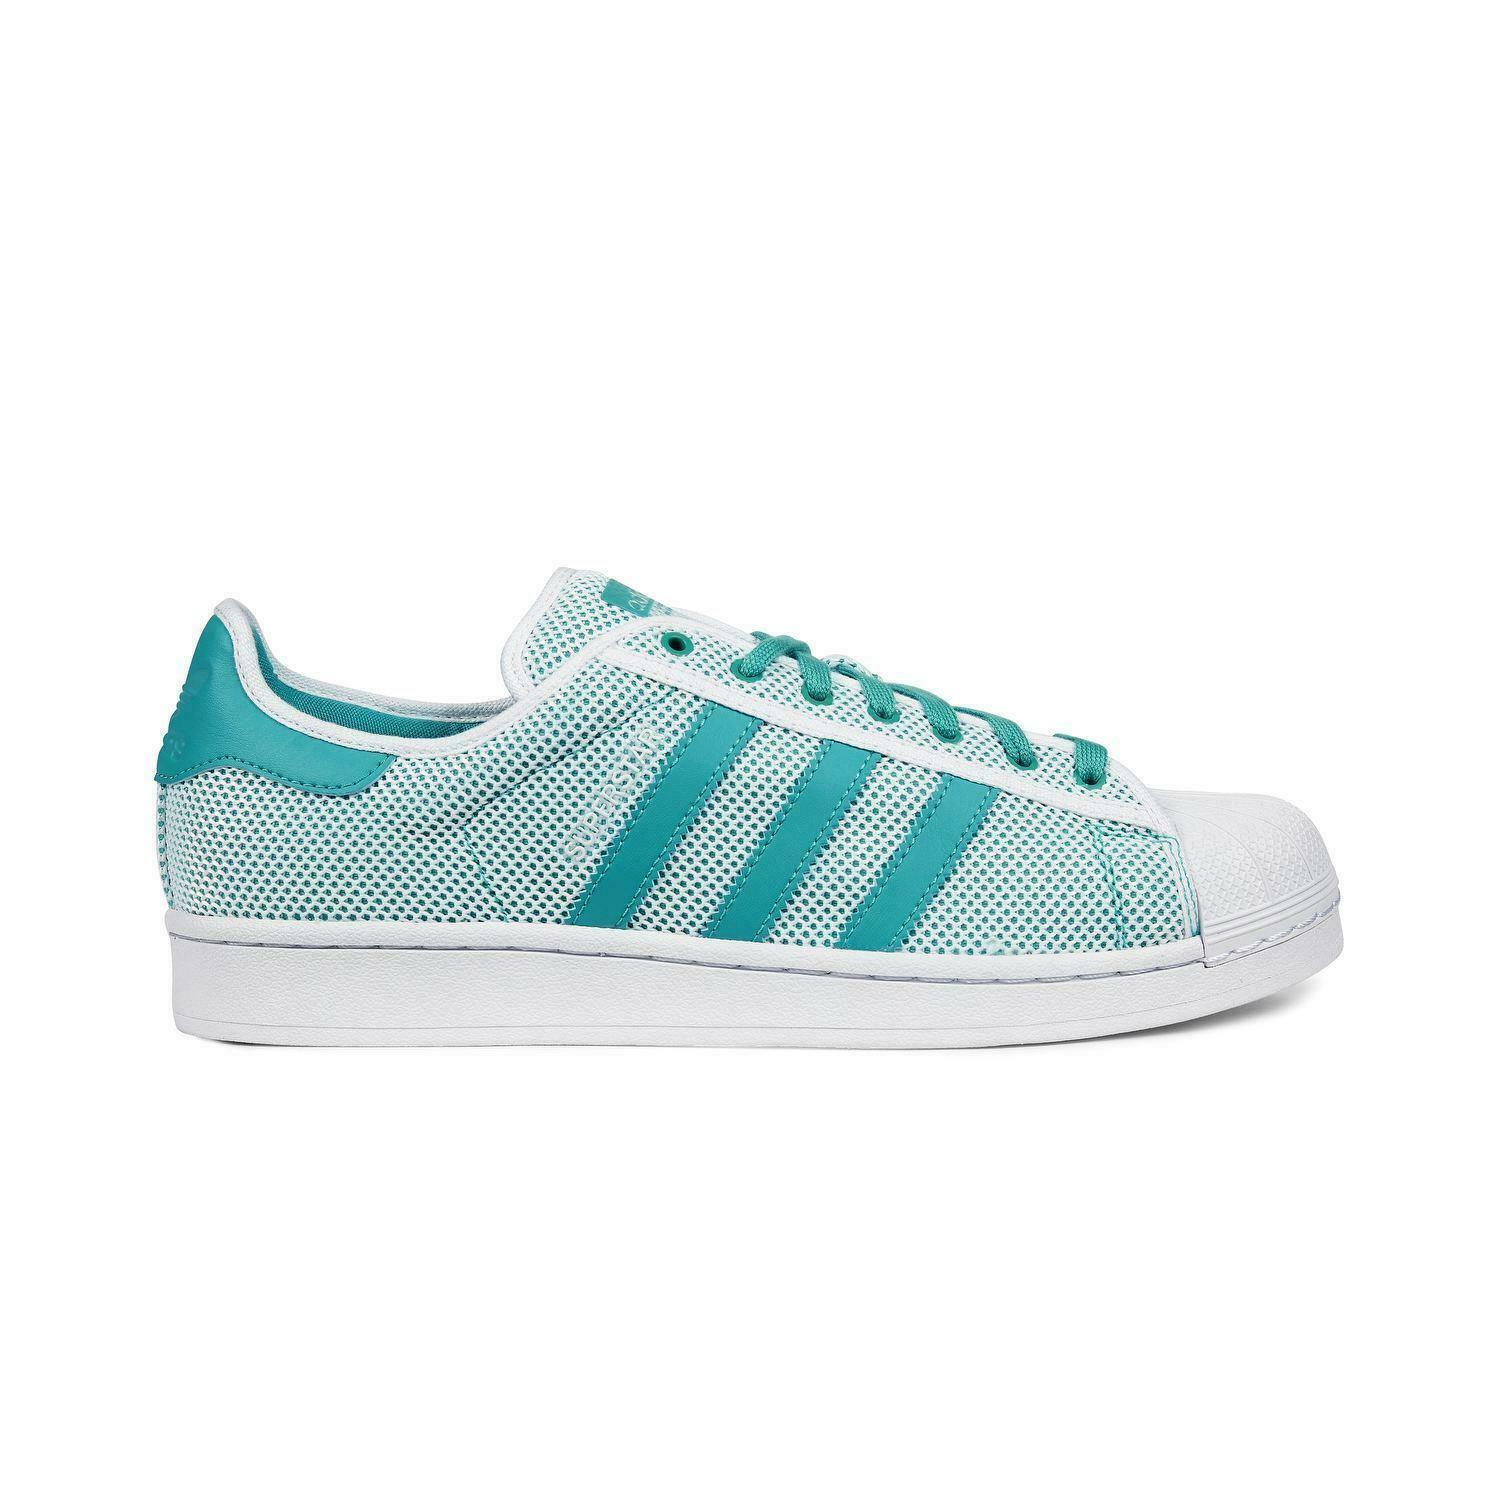 Mens ADIDAS SUPERSTAR ADICOLOR Mint Trainers S76503